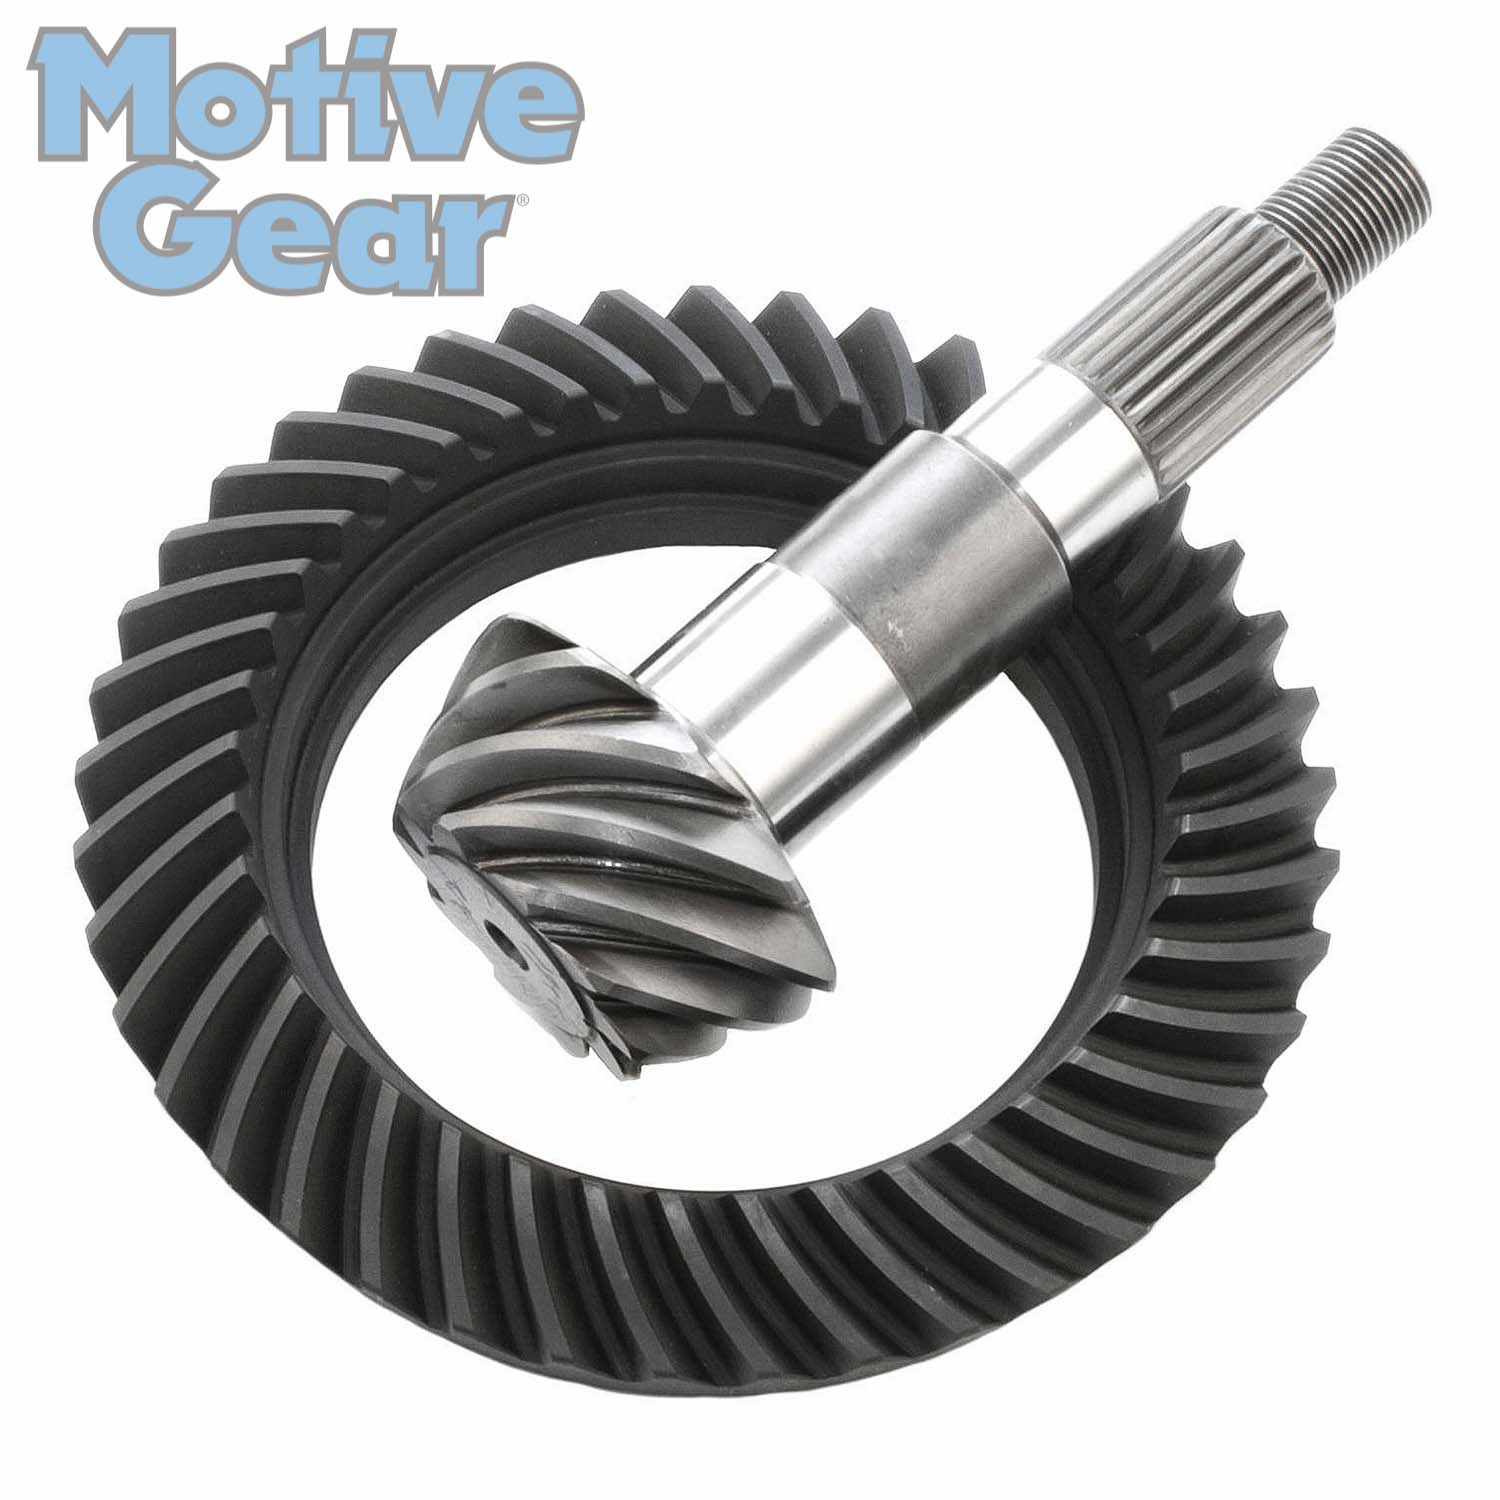 Dana 30 Motive Gear Ring and Pinion Gear Set